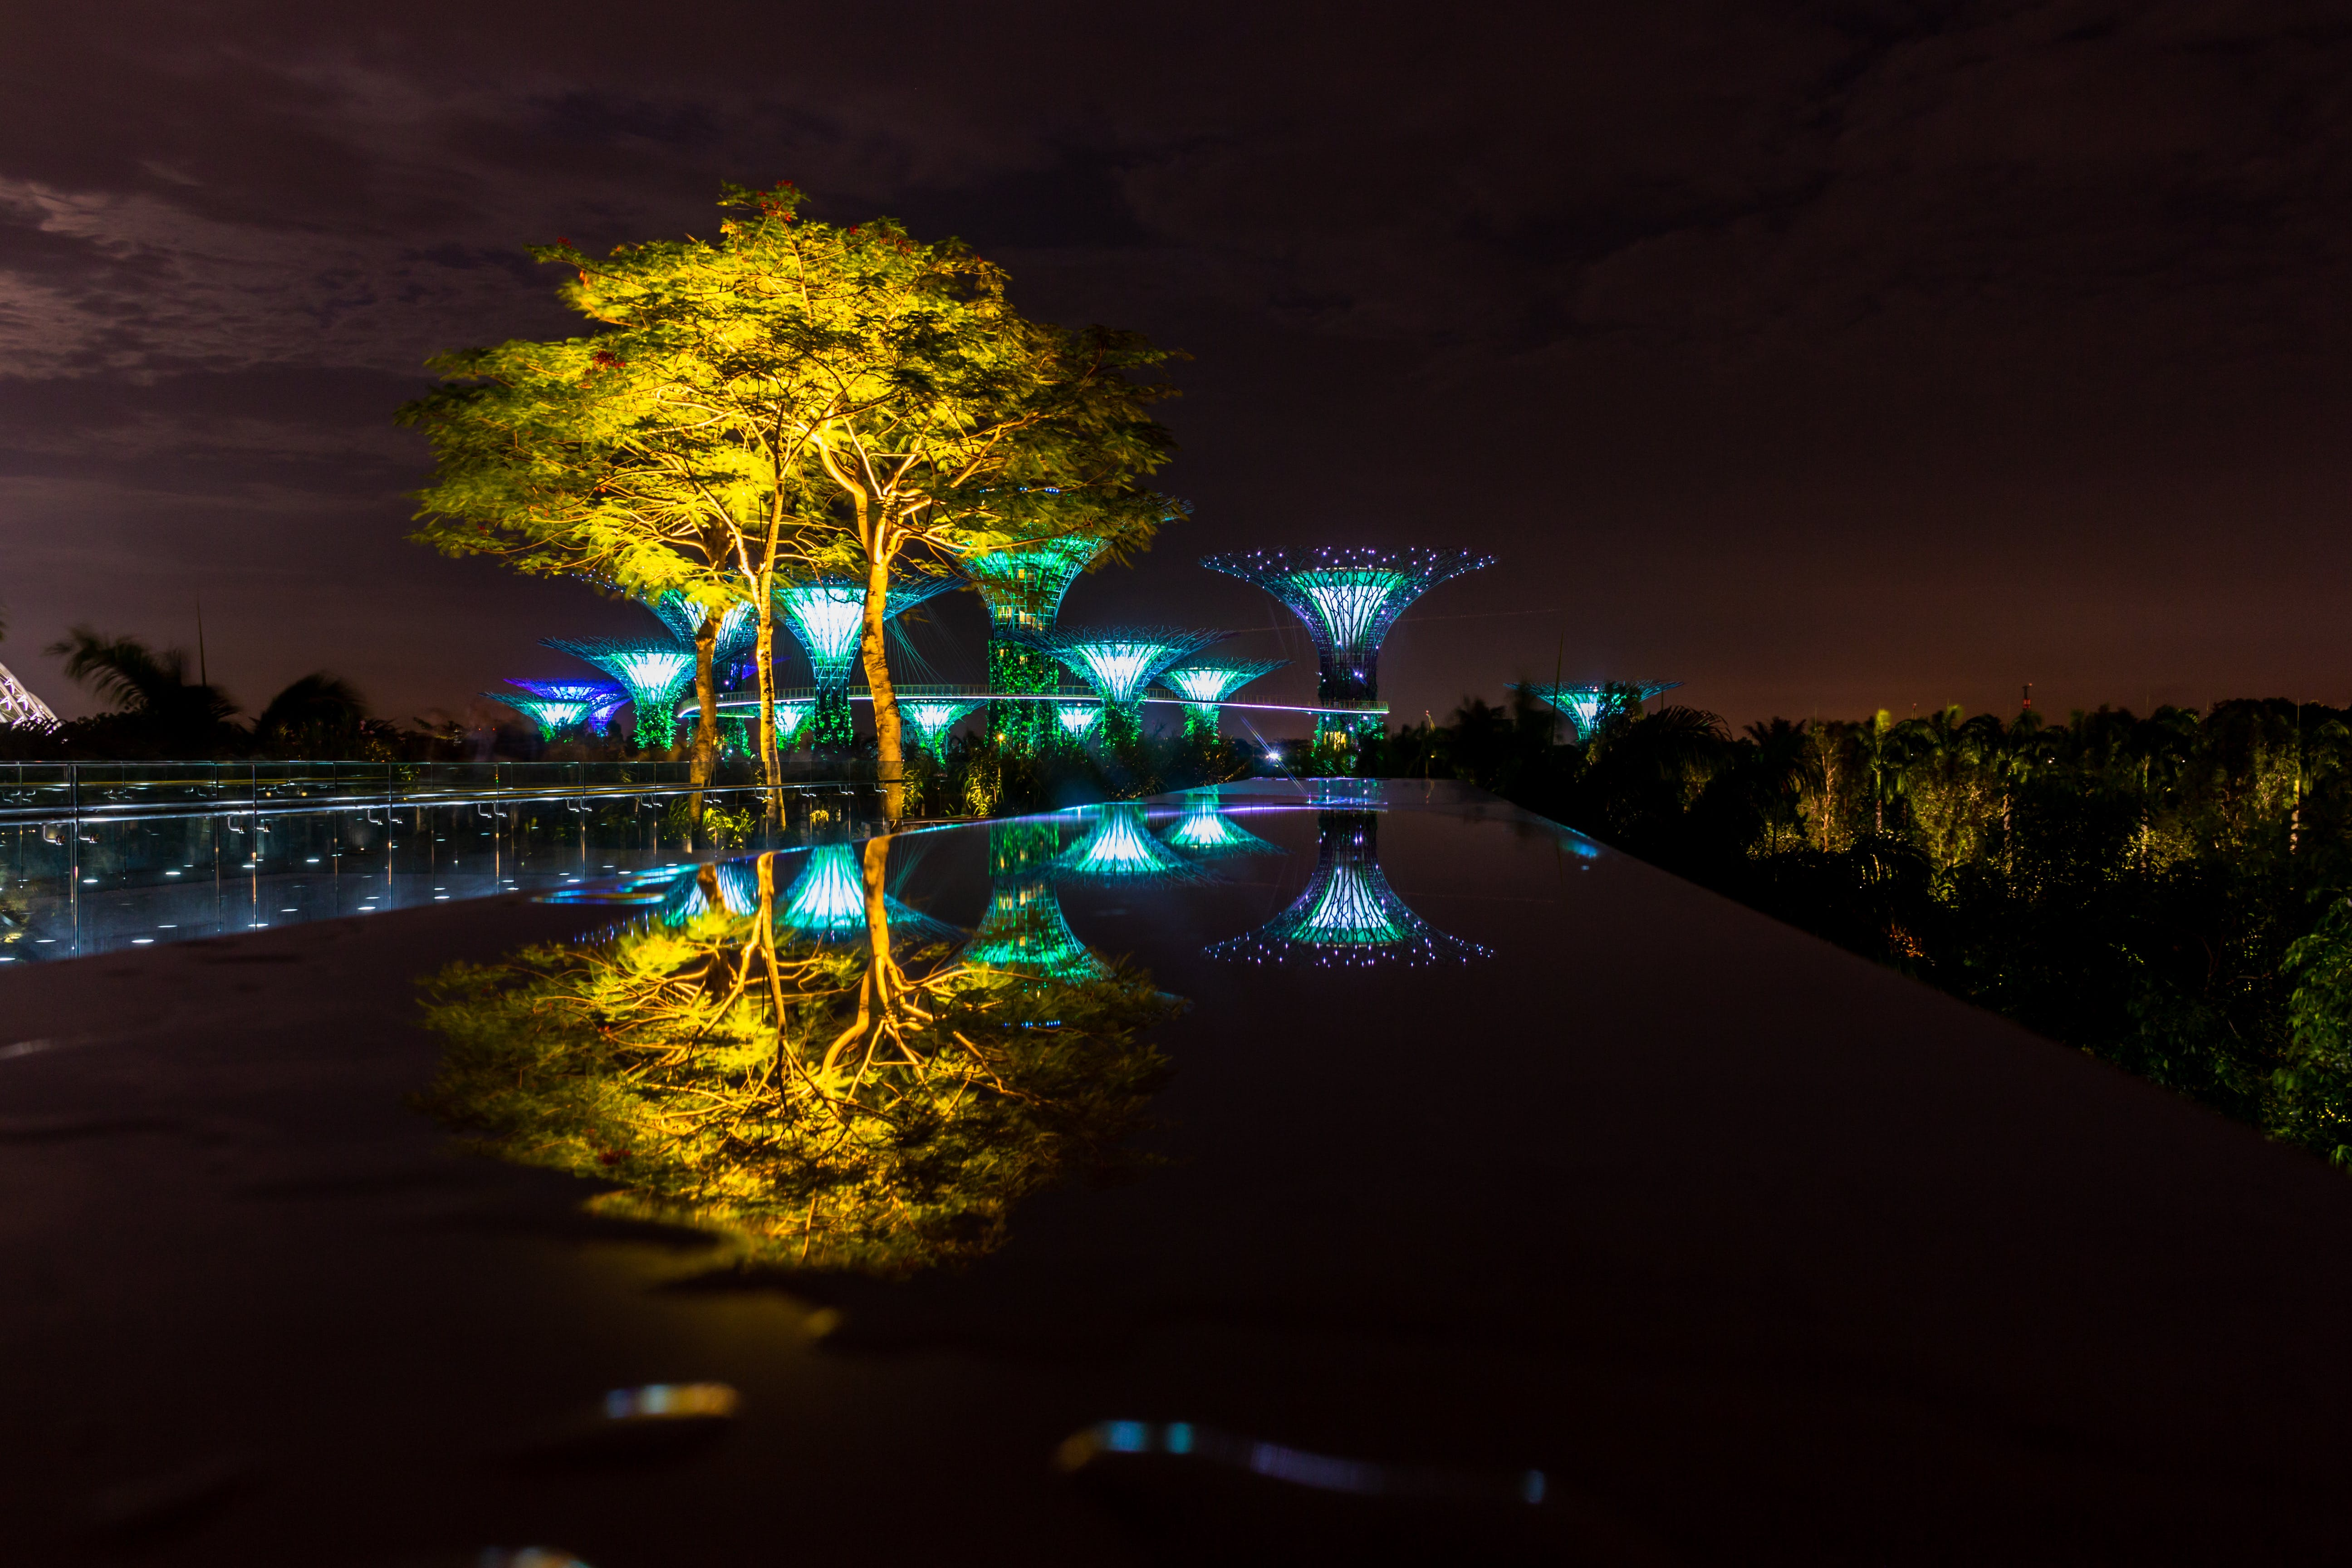 Free stock photo of gardens by the bay, light reflections, long exposure, reflection